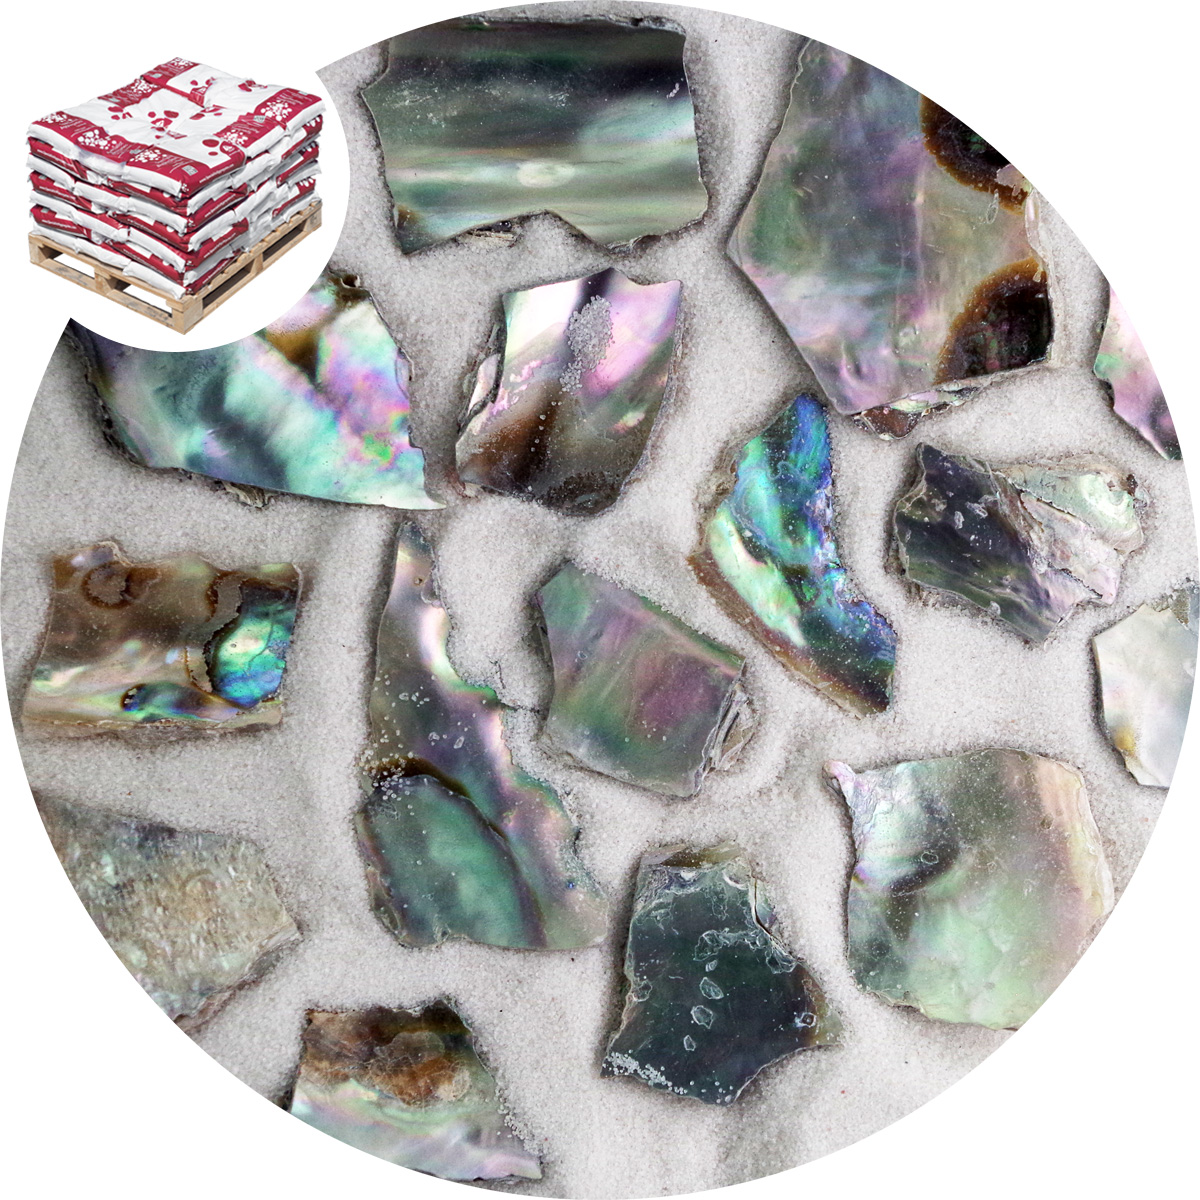 Buy Crushed Sea Shells Natural Abalone Specialist